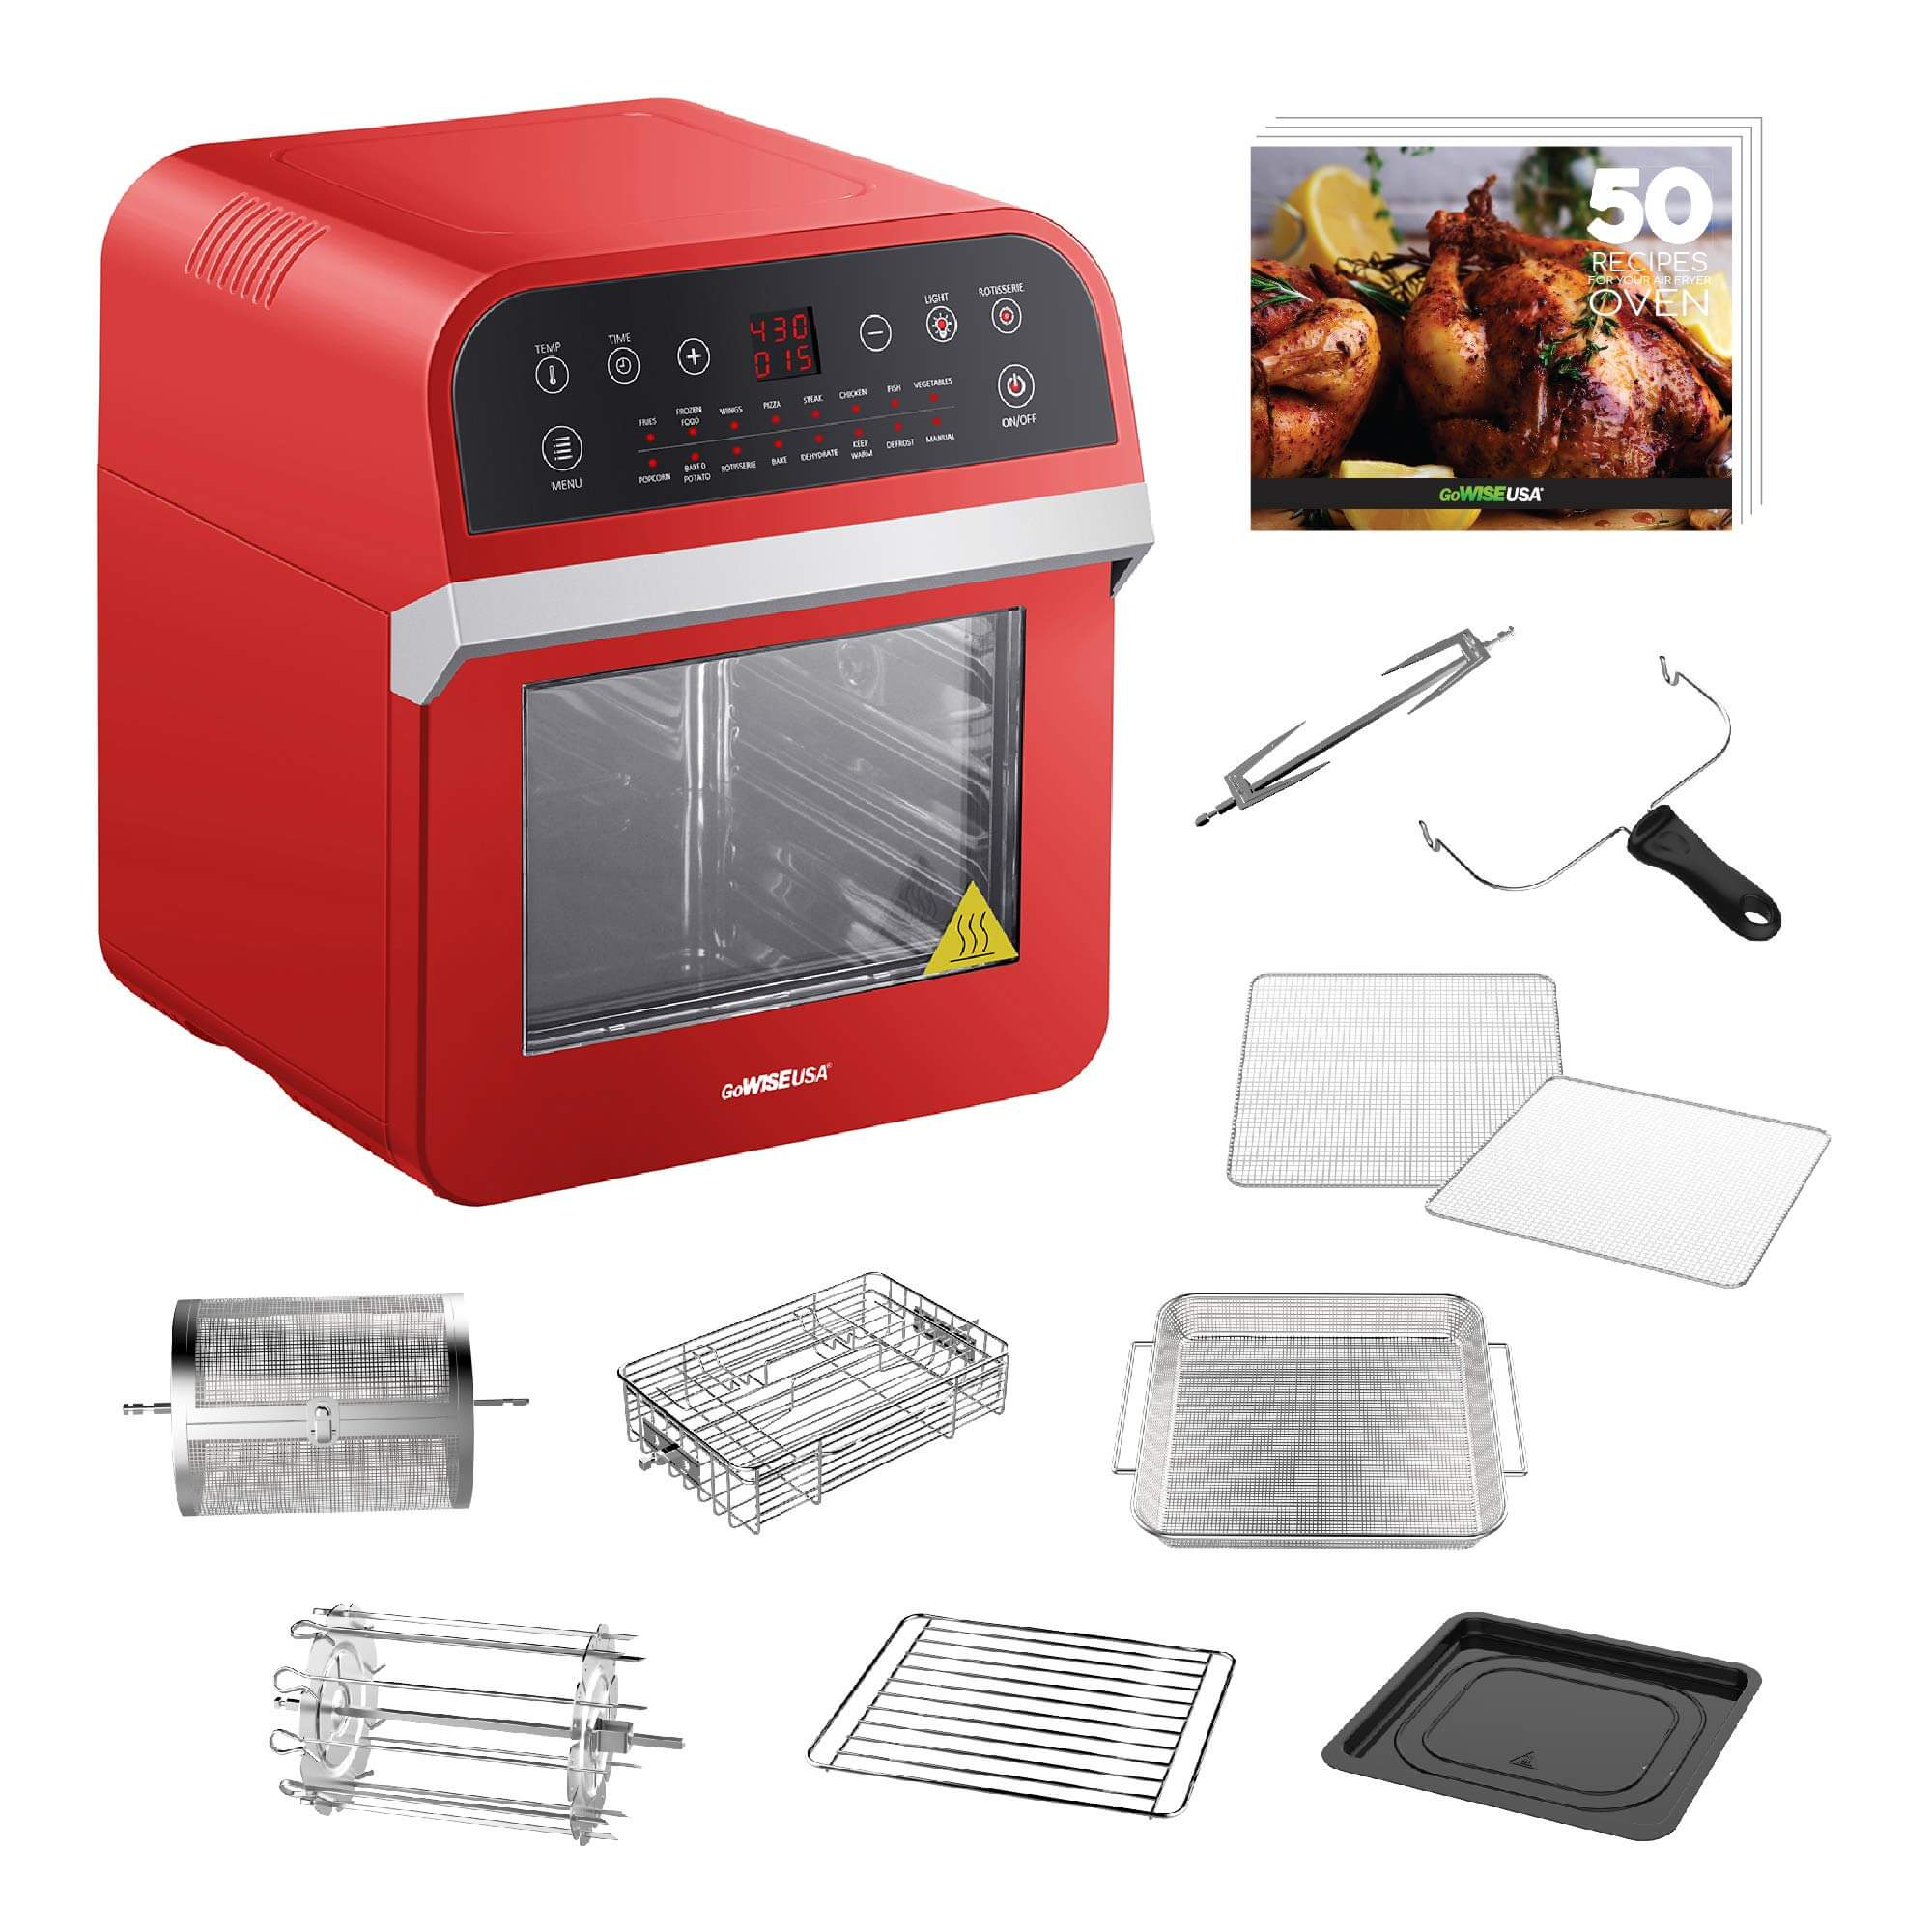 GoWISE USA GW44801 Deluxe, gowise air fryer oven, gowise usa air fryer, gowise air fryer xl, best small air fryer, air fryer amazon, amazon air fryer, air fryer accessories